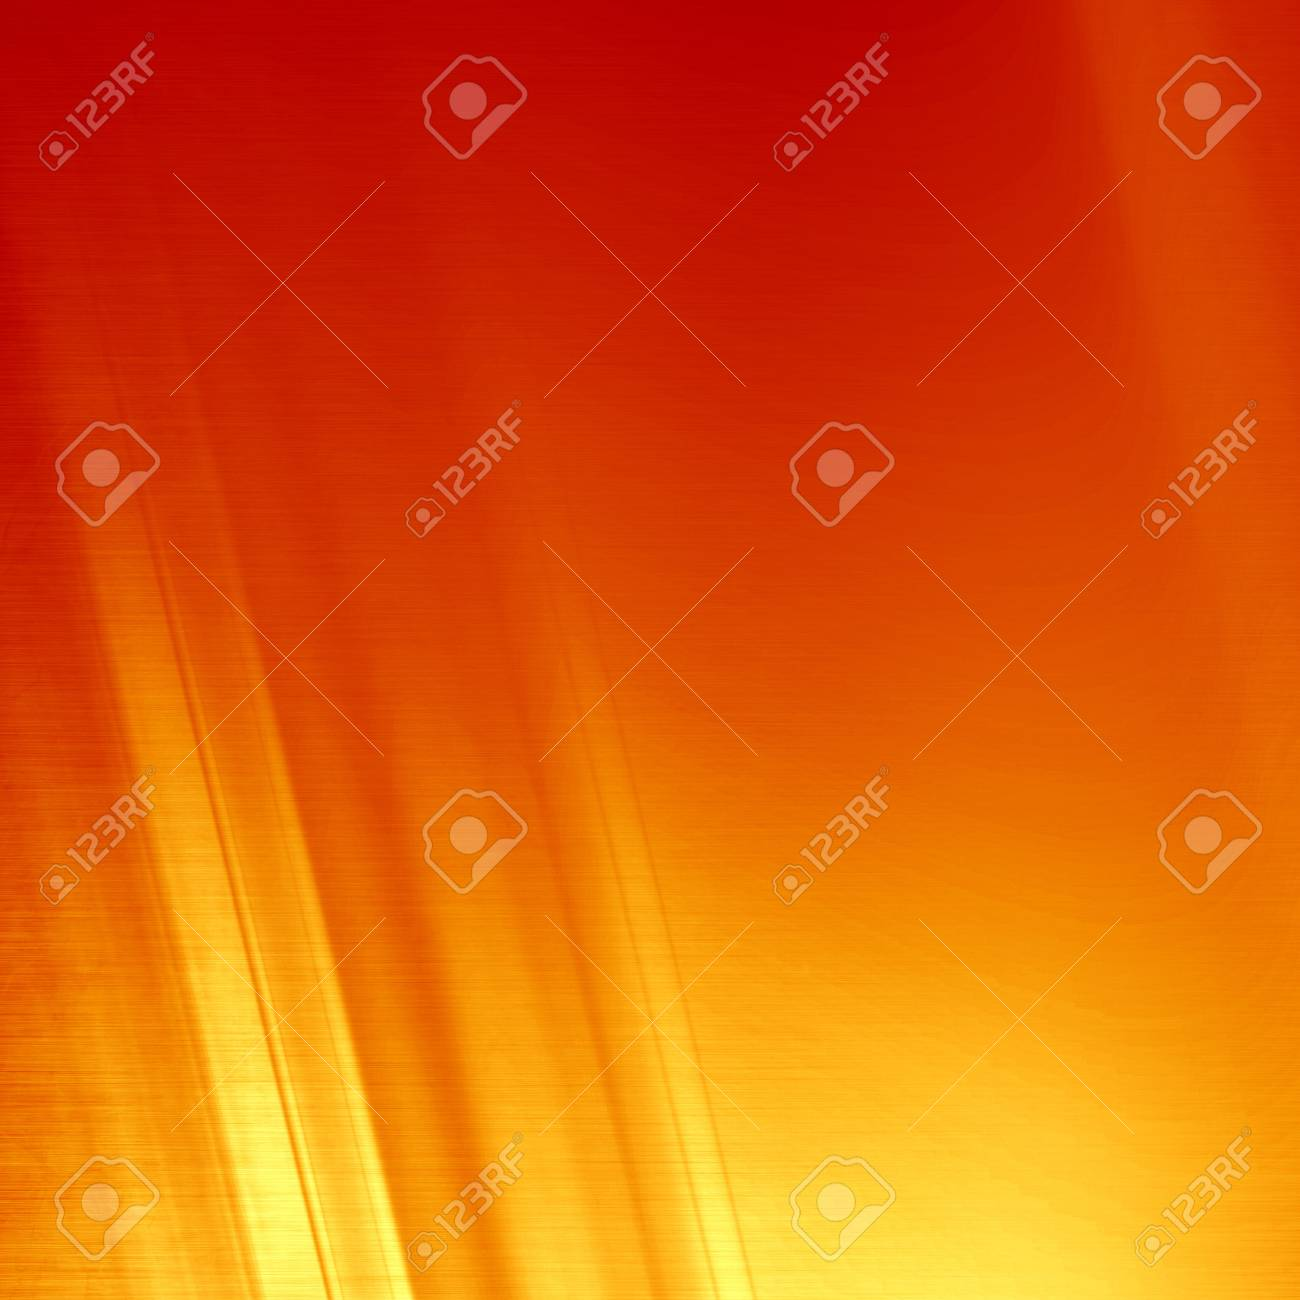 fire background with some smooth lines in it Stock Photo - 21883382